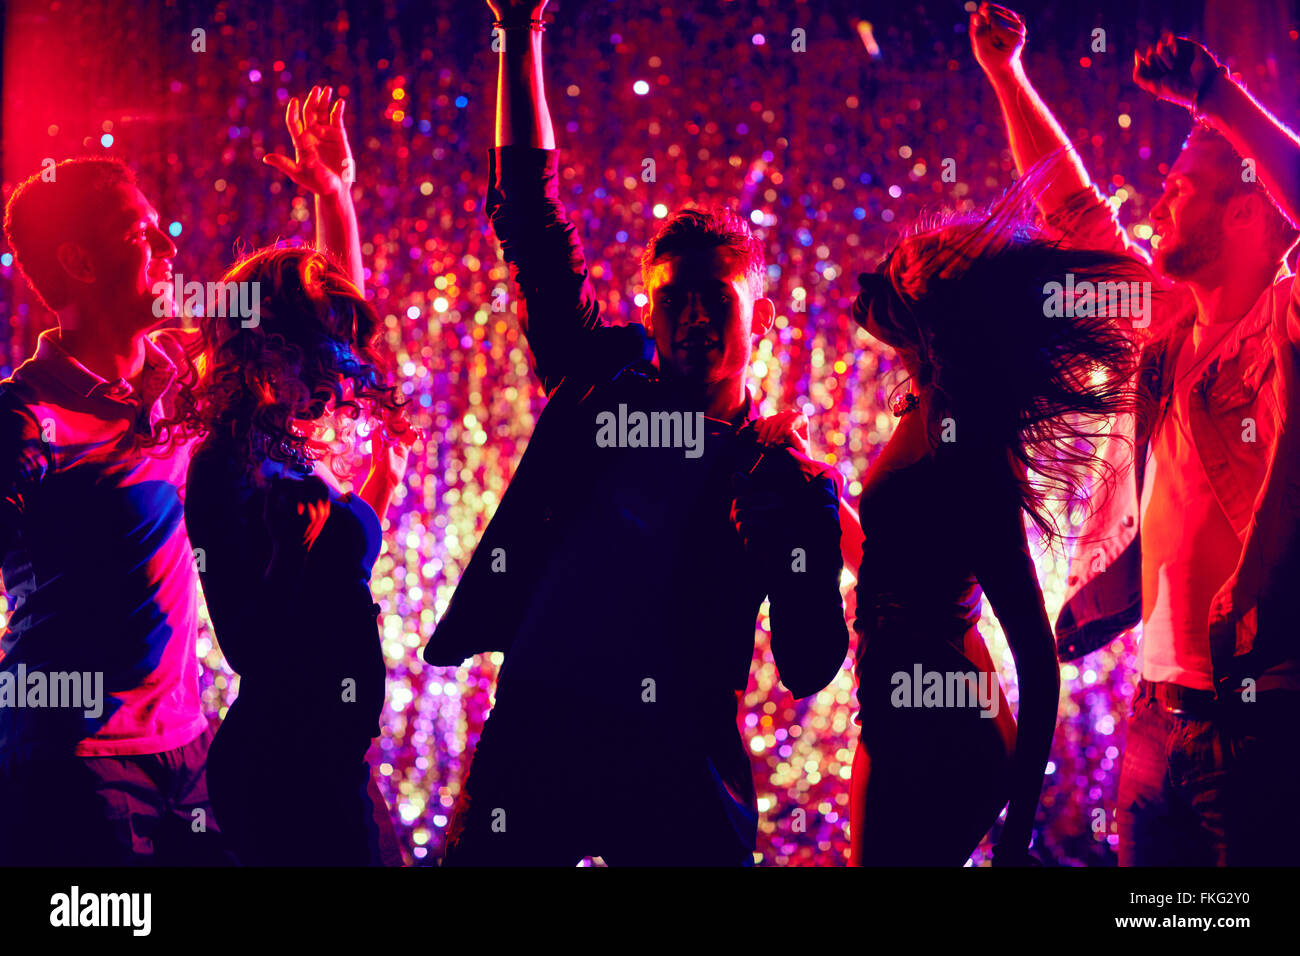 Young people dancing at party - Stock Image